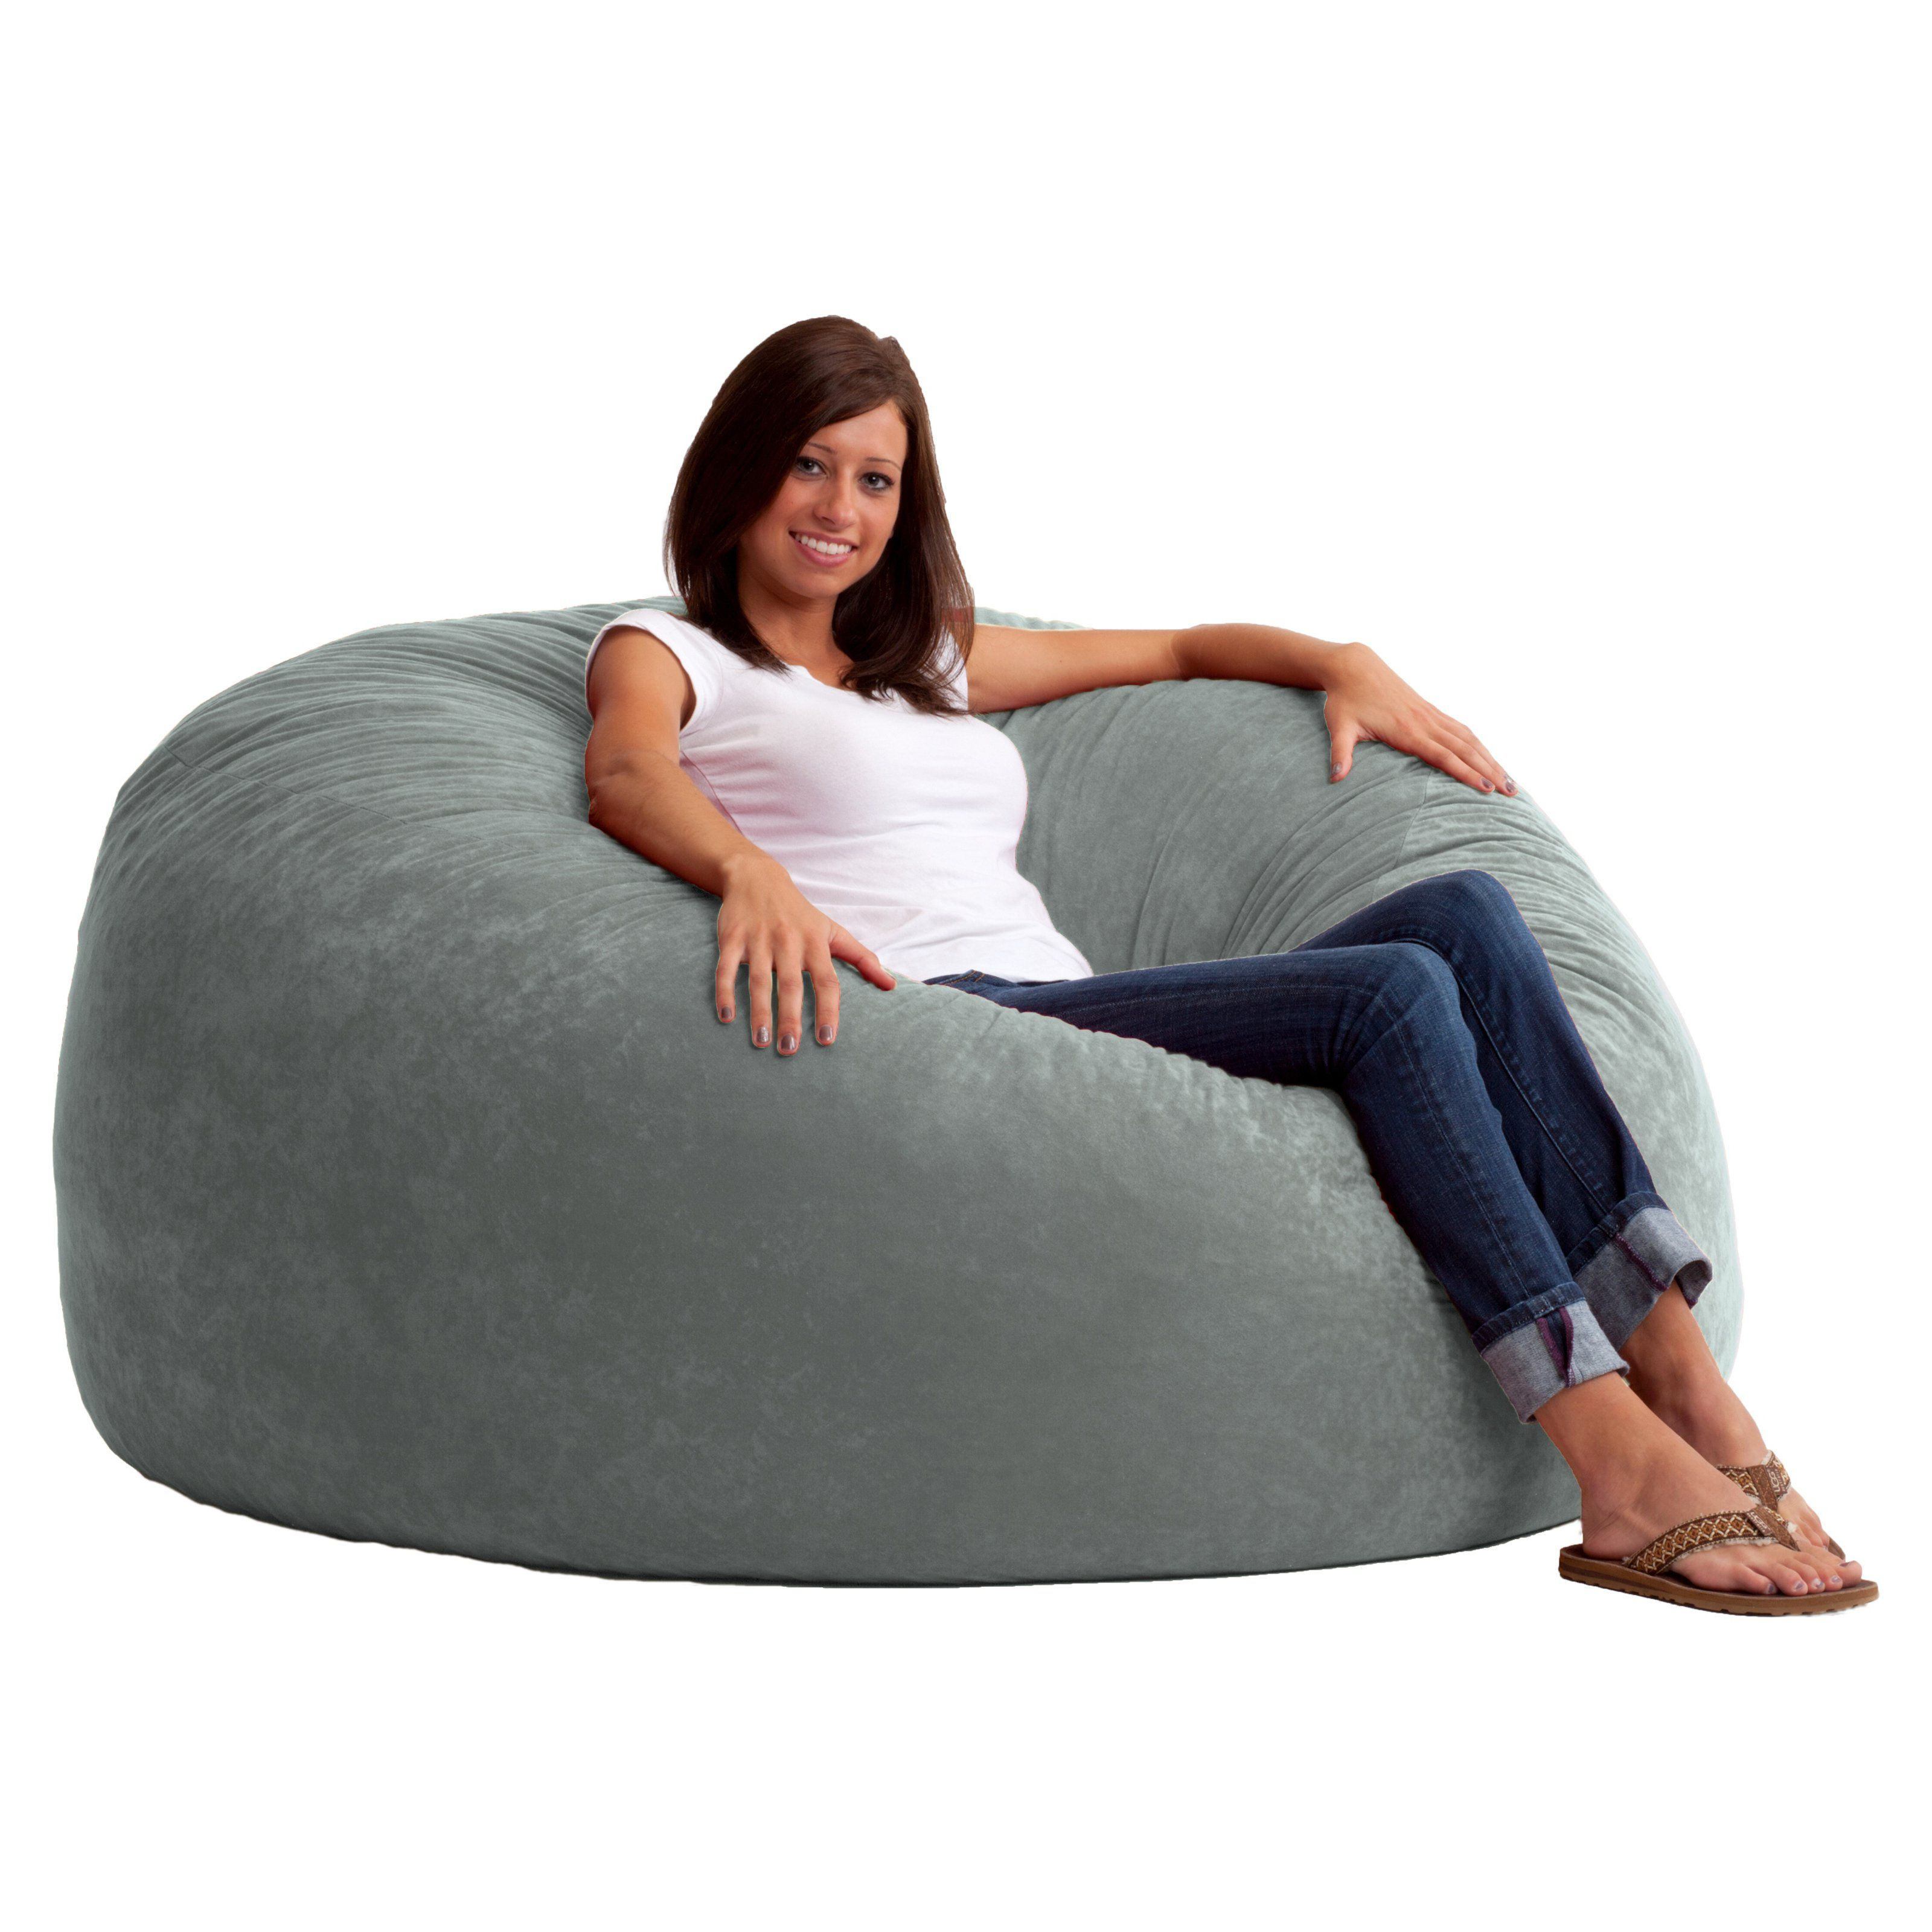 Fuf 5 Ft King Comfort Suede Bean Bag Sofa No Need To Get Up From Your Roost In The Original Chair